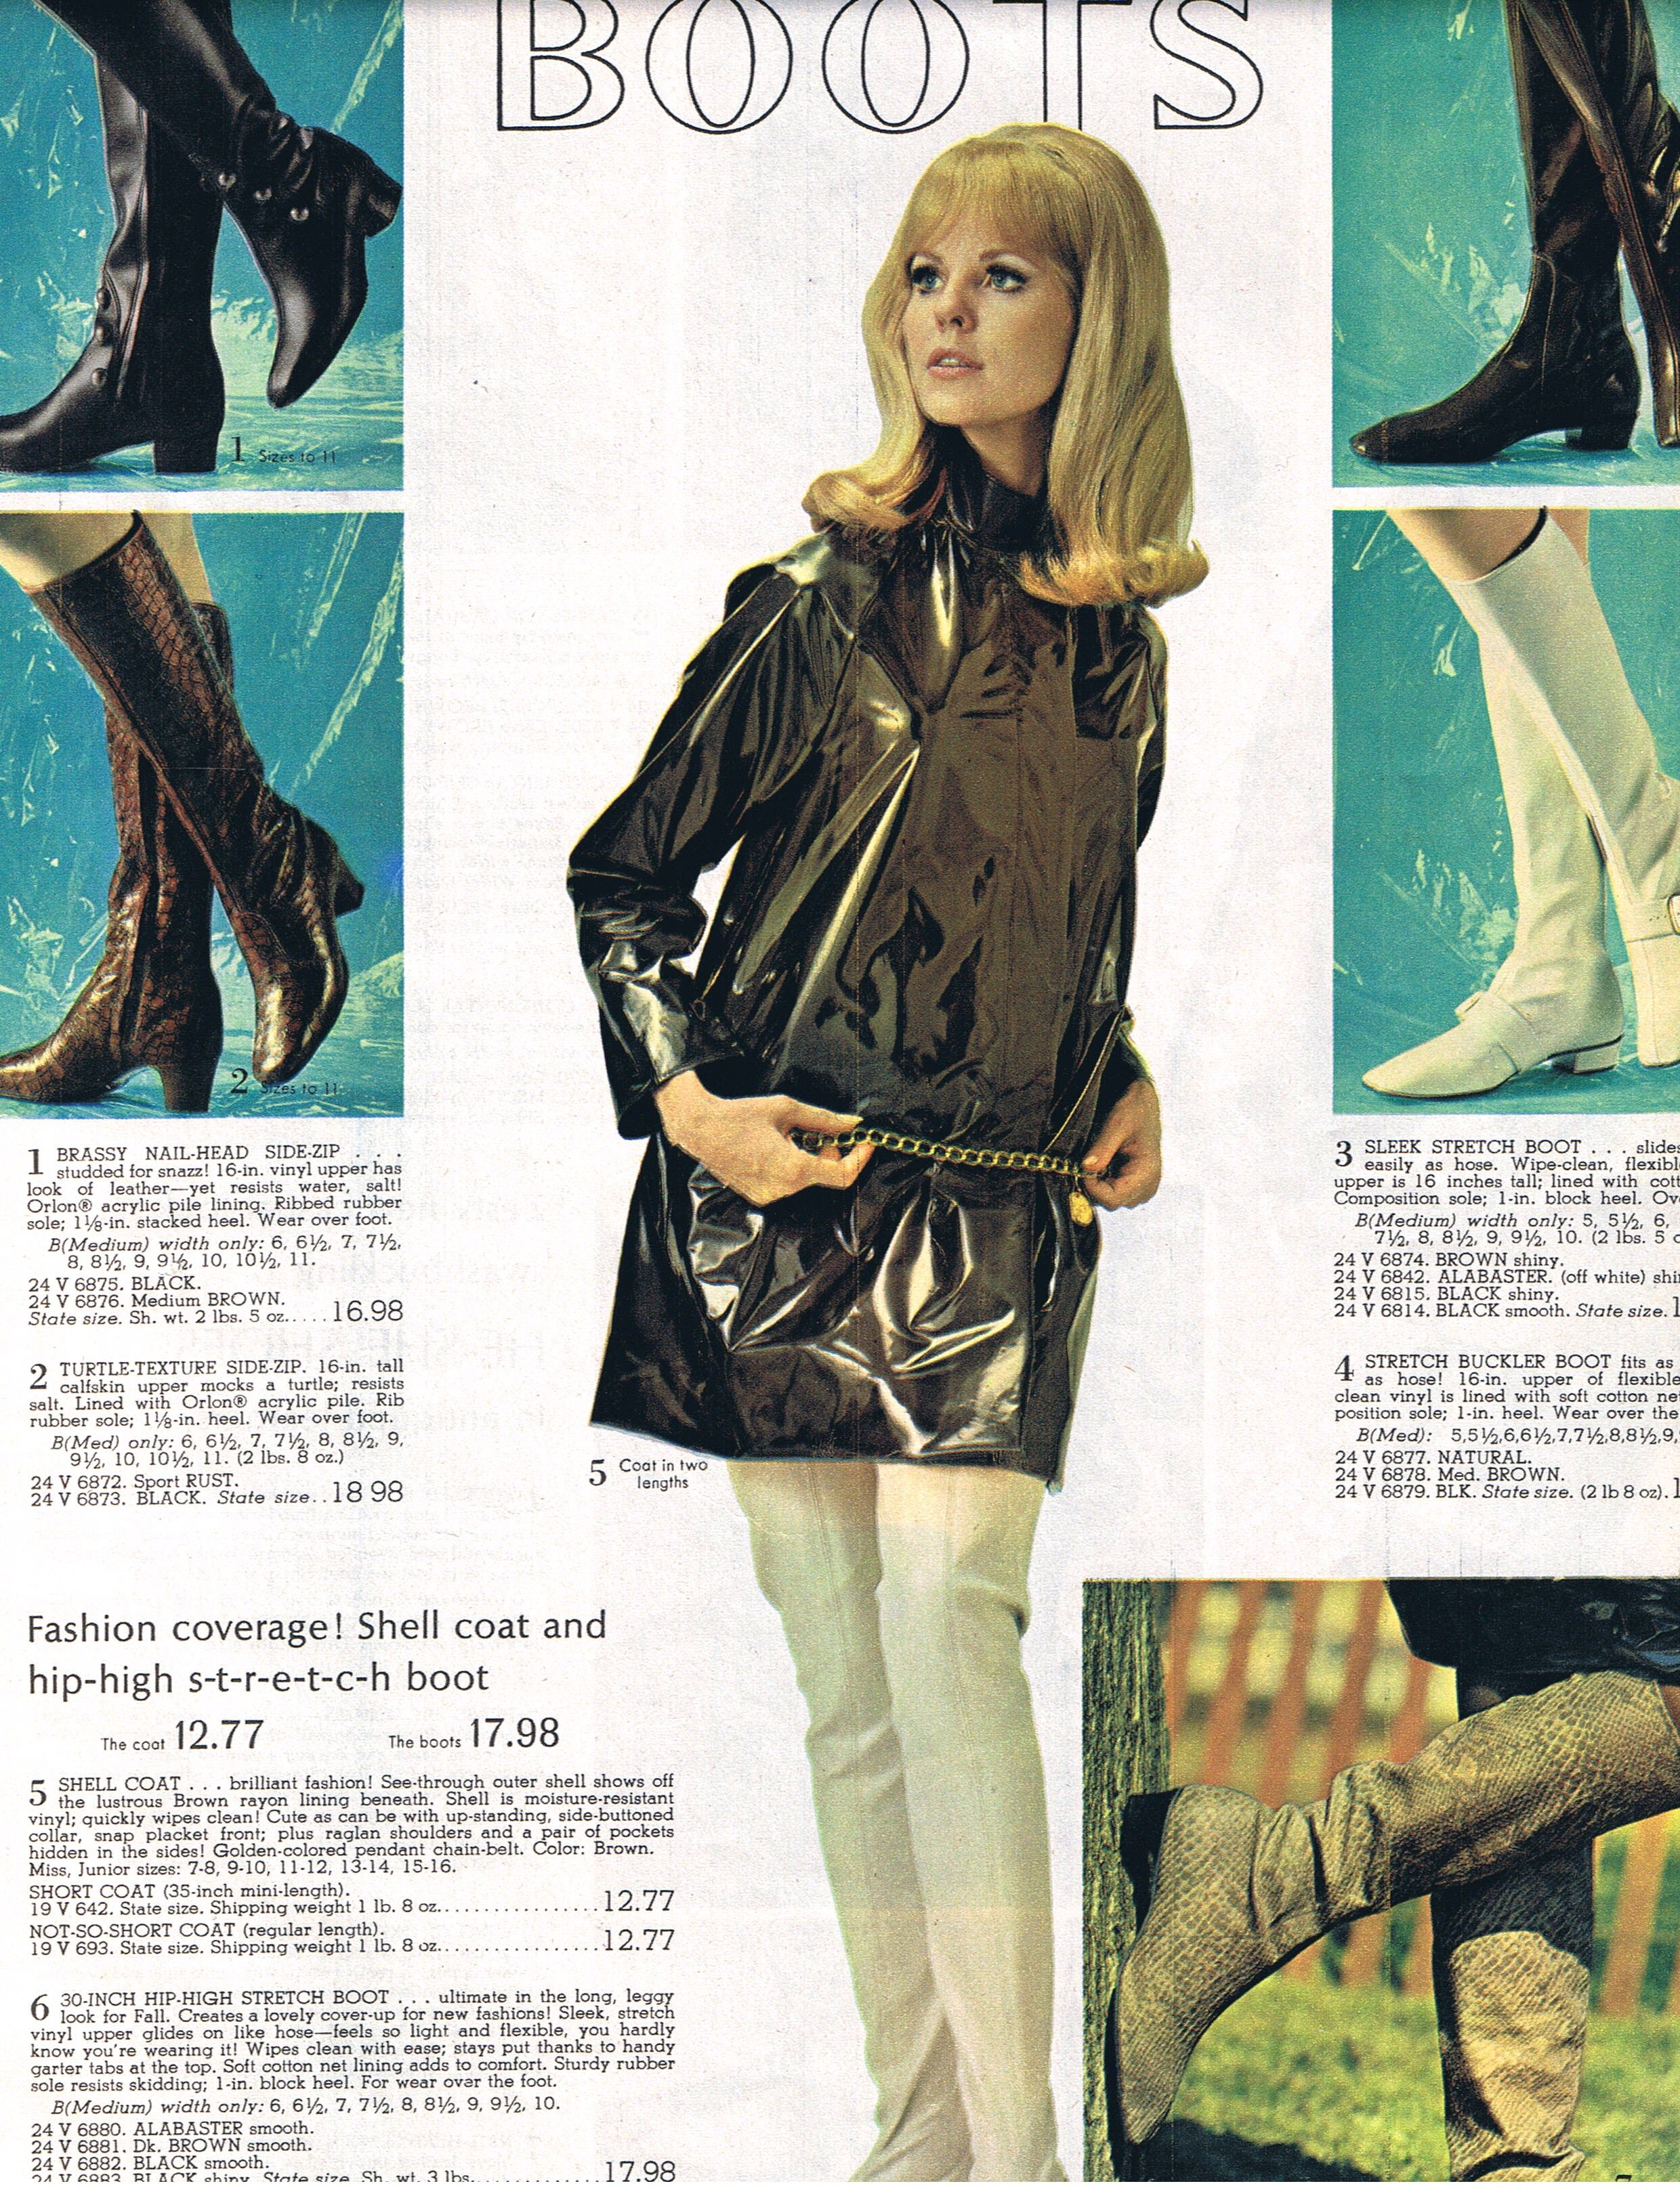 Spiegel 24 Spiegel 60s Gogo Boots Advertisement 1968 60s Advertising Cool